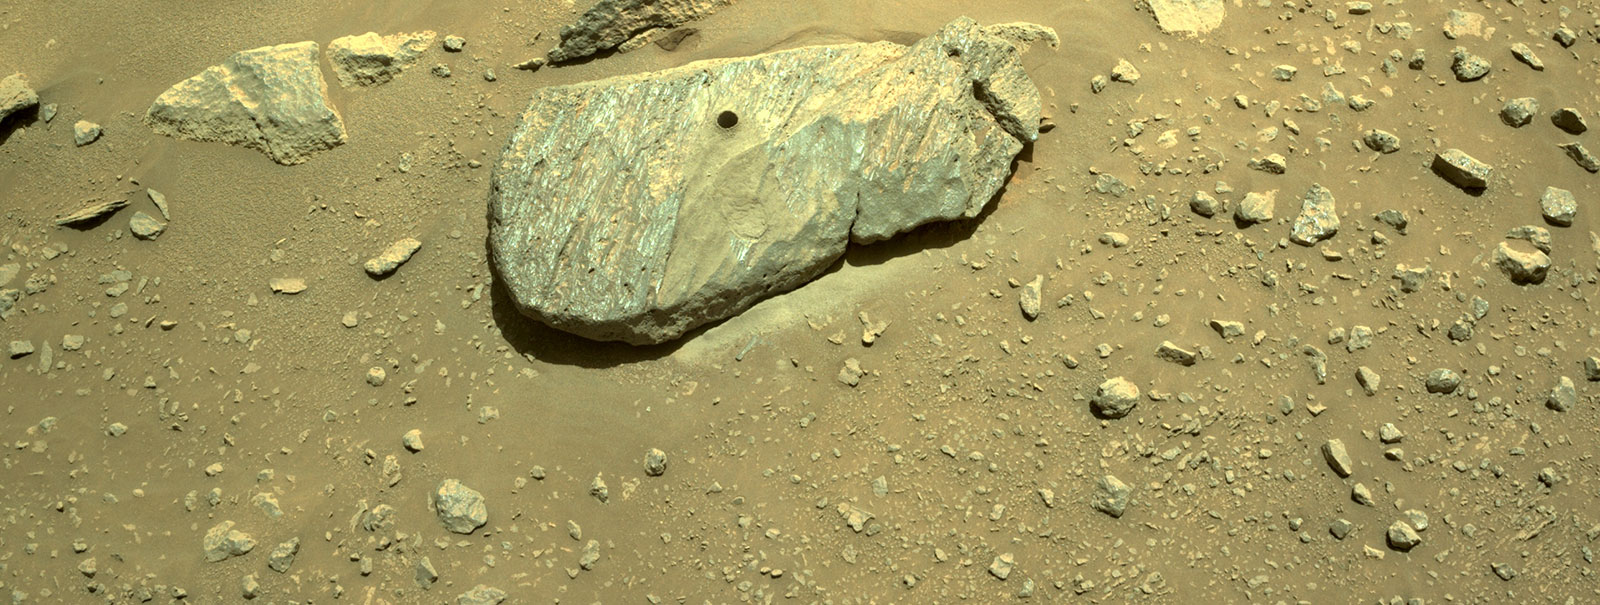 NASA to Host Briefing on Successful Sample Collection of Martian Rock